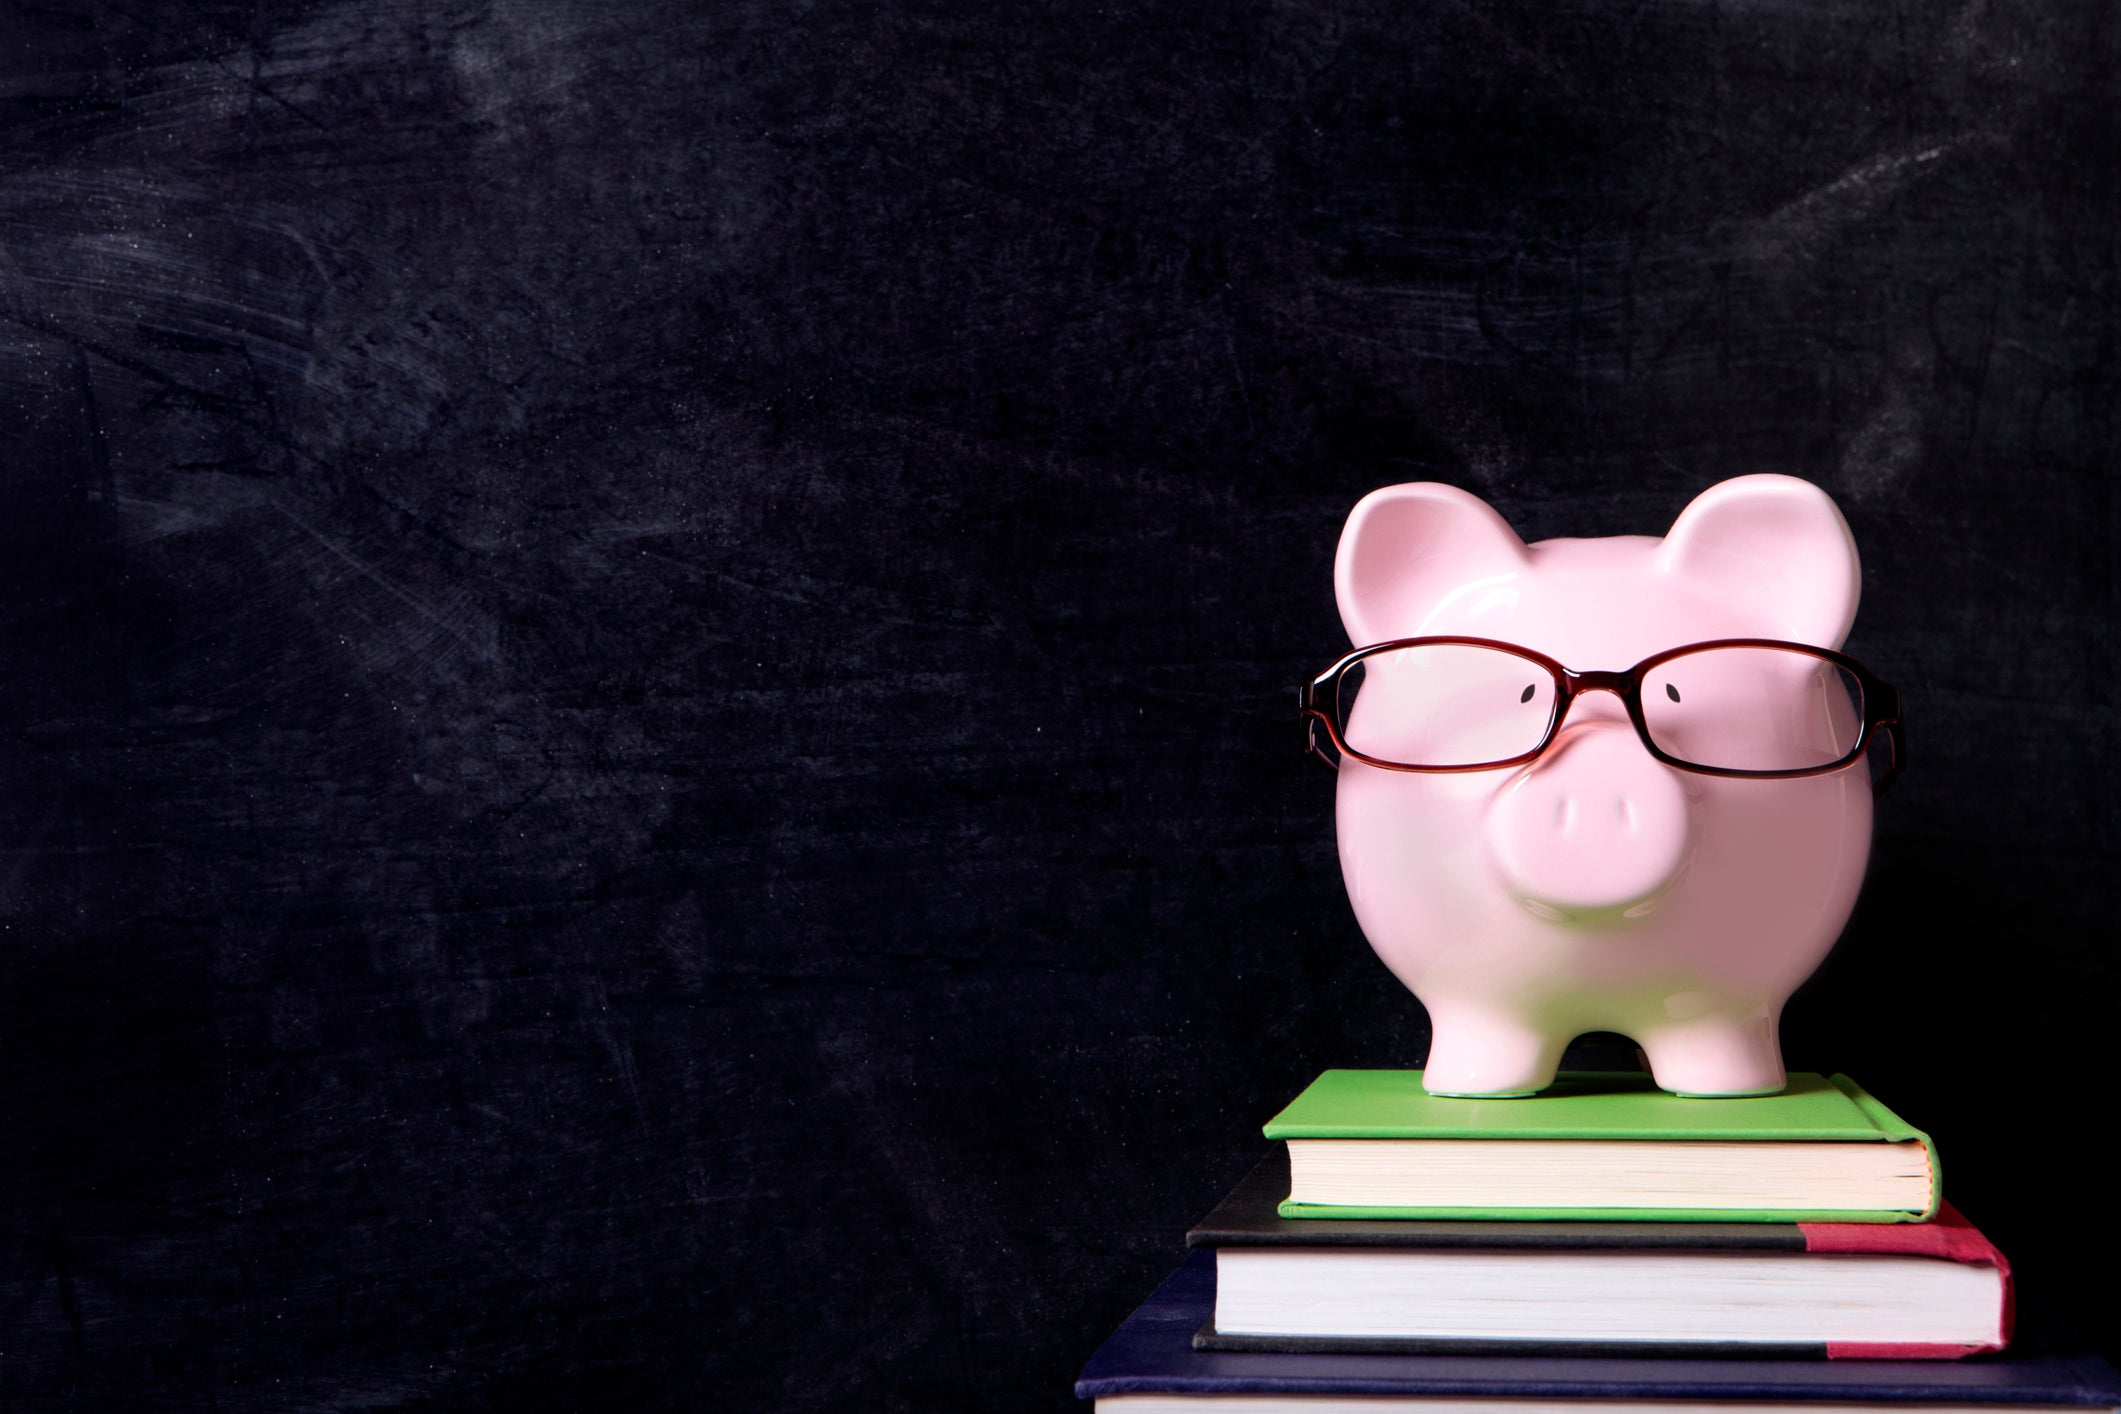 A piggy bank with glasses on.